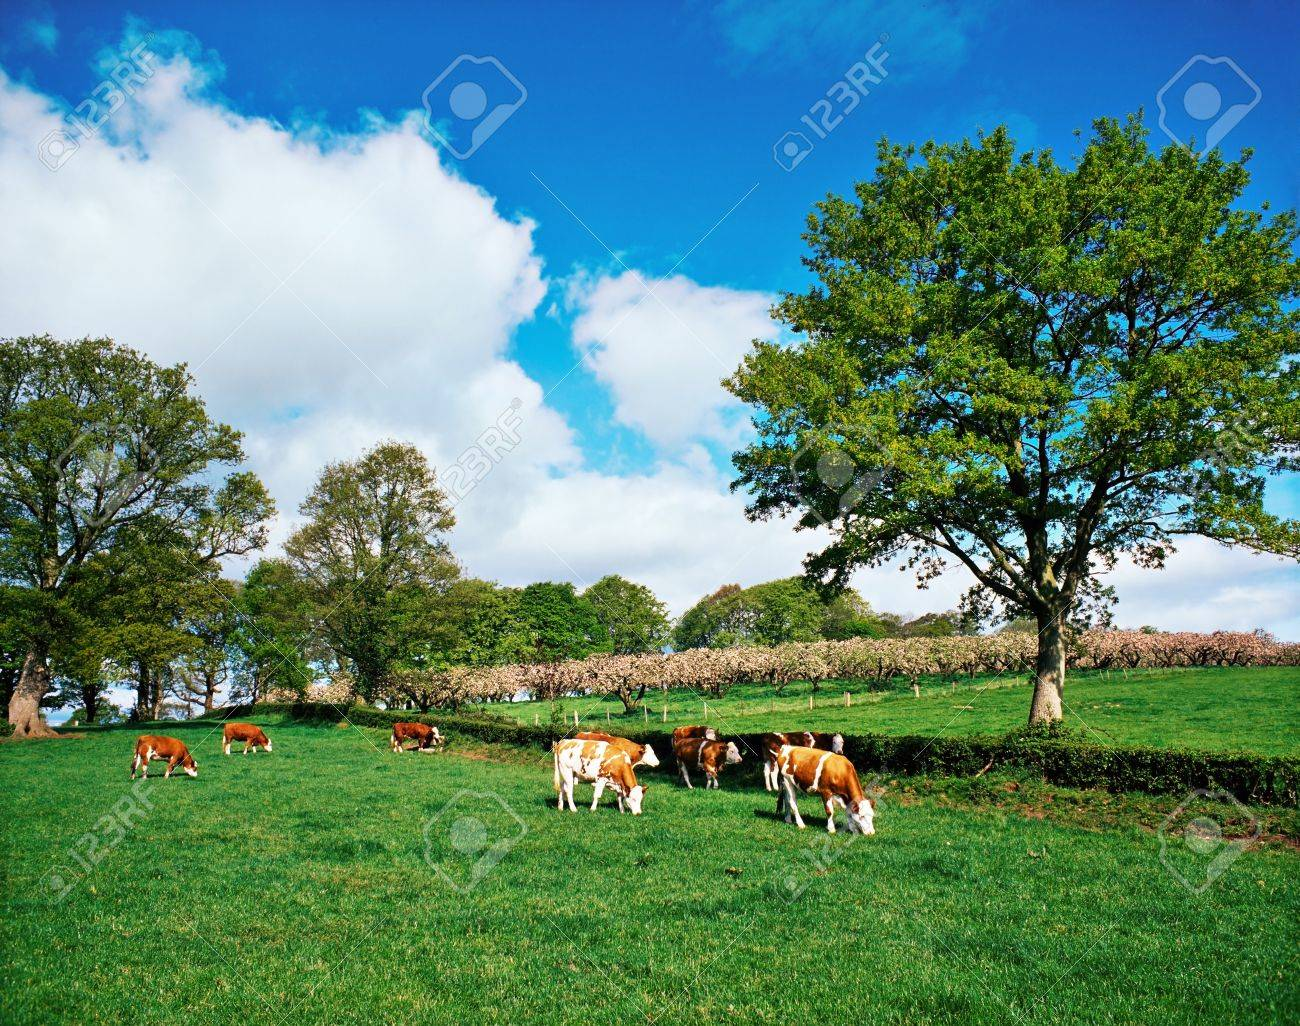 Hereford bullocks, Ireland Stock Photo - 8244064